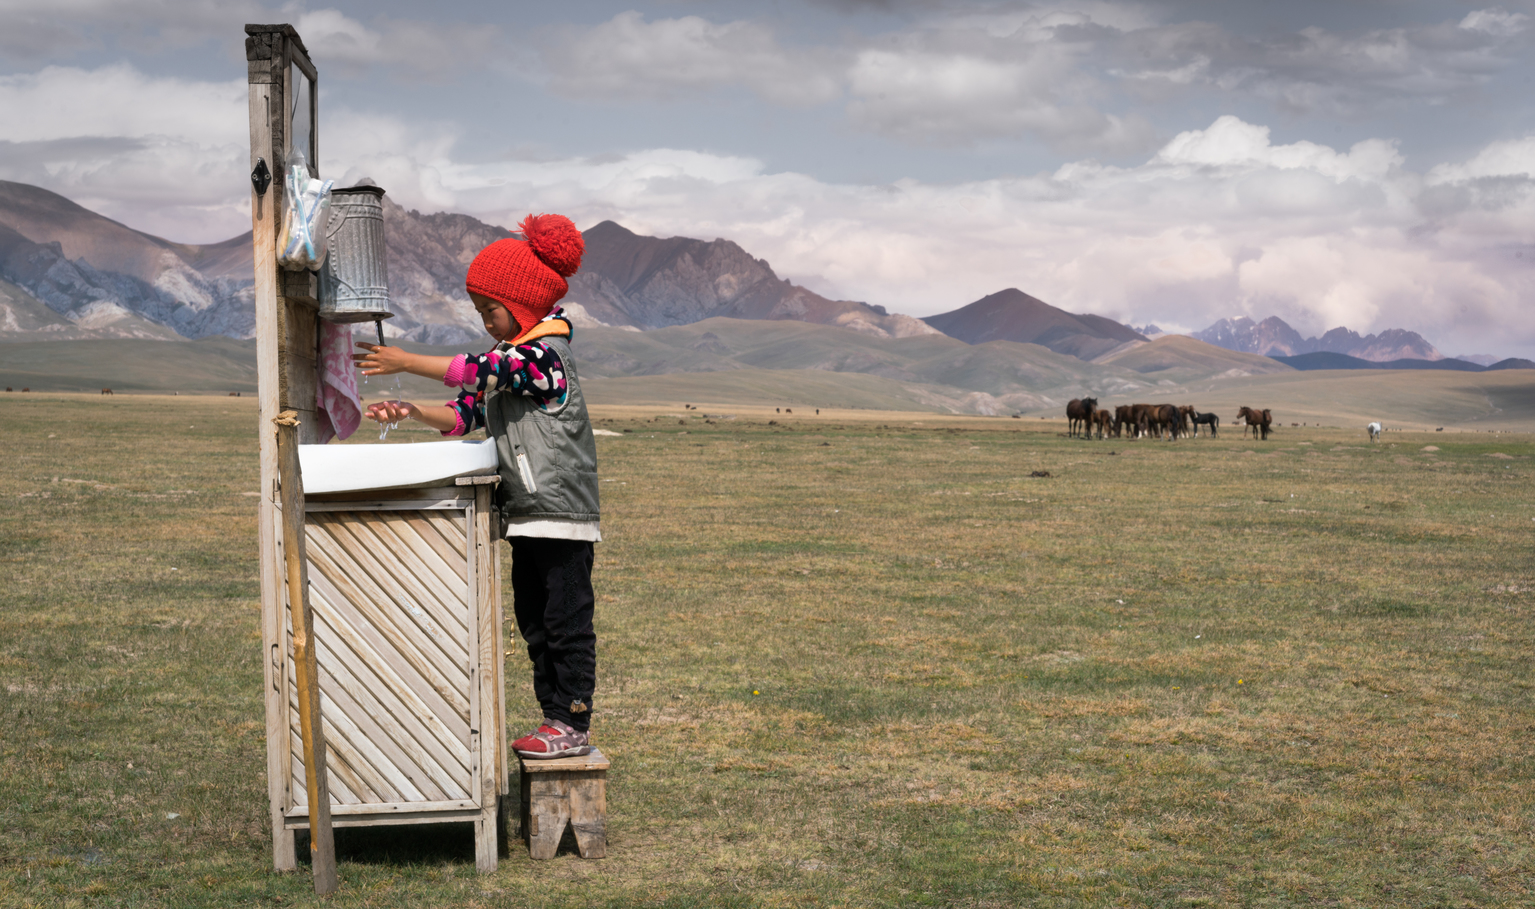 Five-year-old Ainazik demonstrates proper handwashing technique at an outdoor basin in a pasture in Naryn province, Kyrgyzstan.